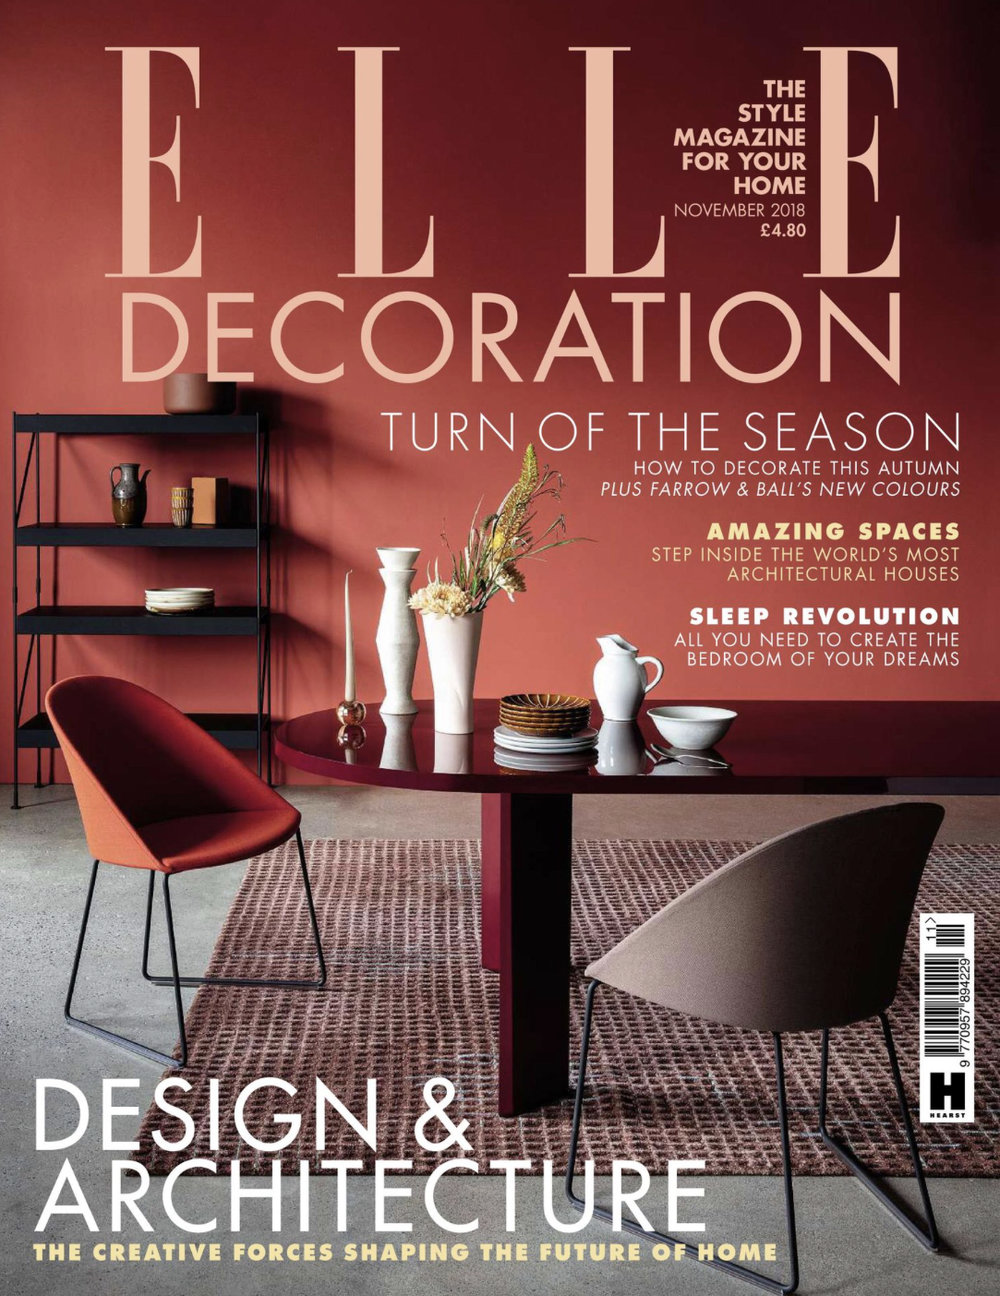 ElleDecorationCover.jpg